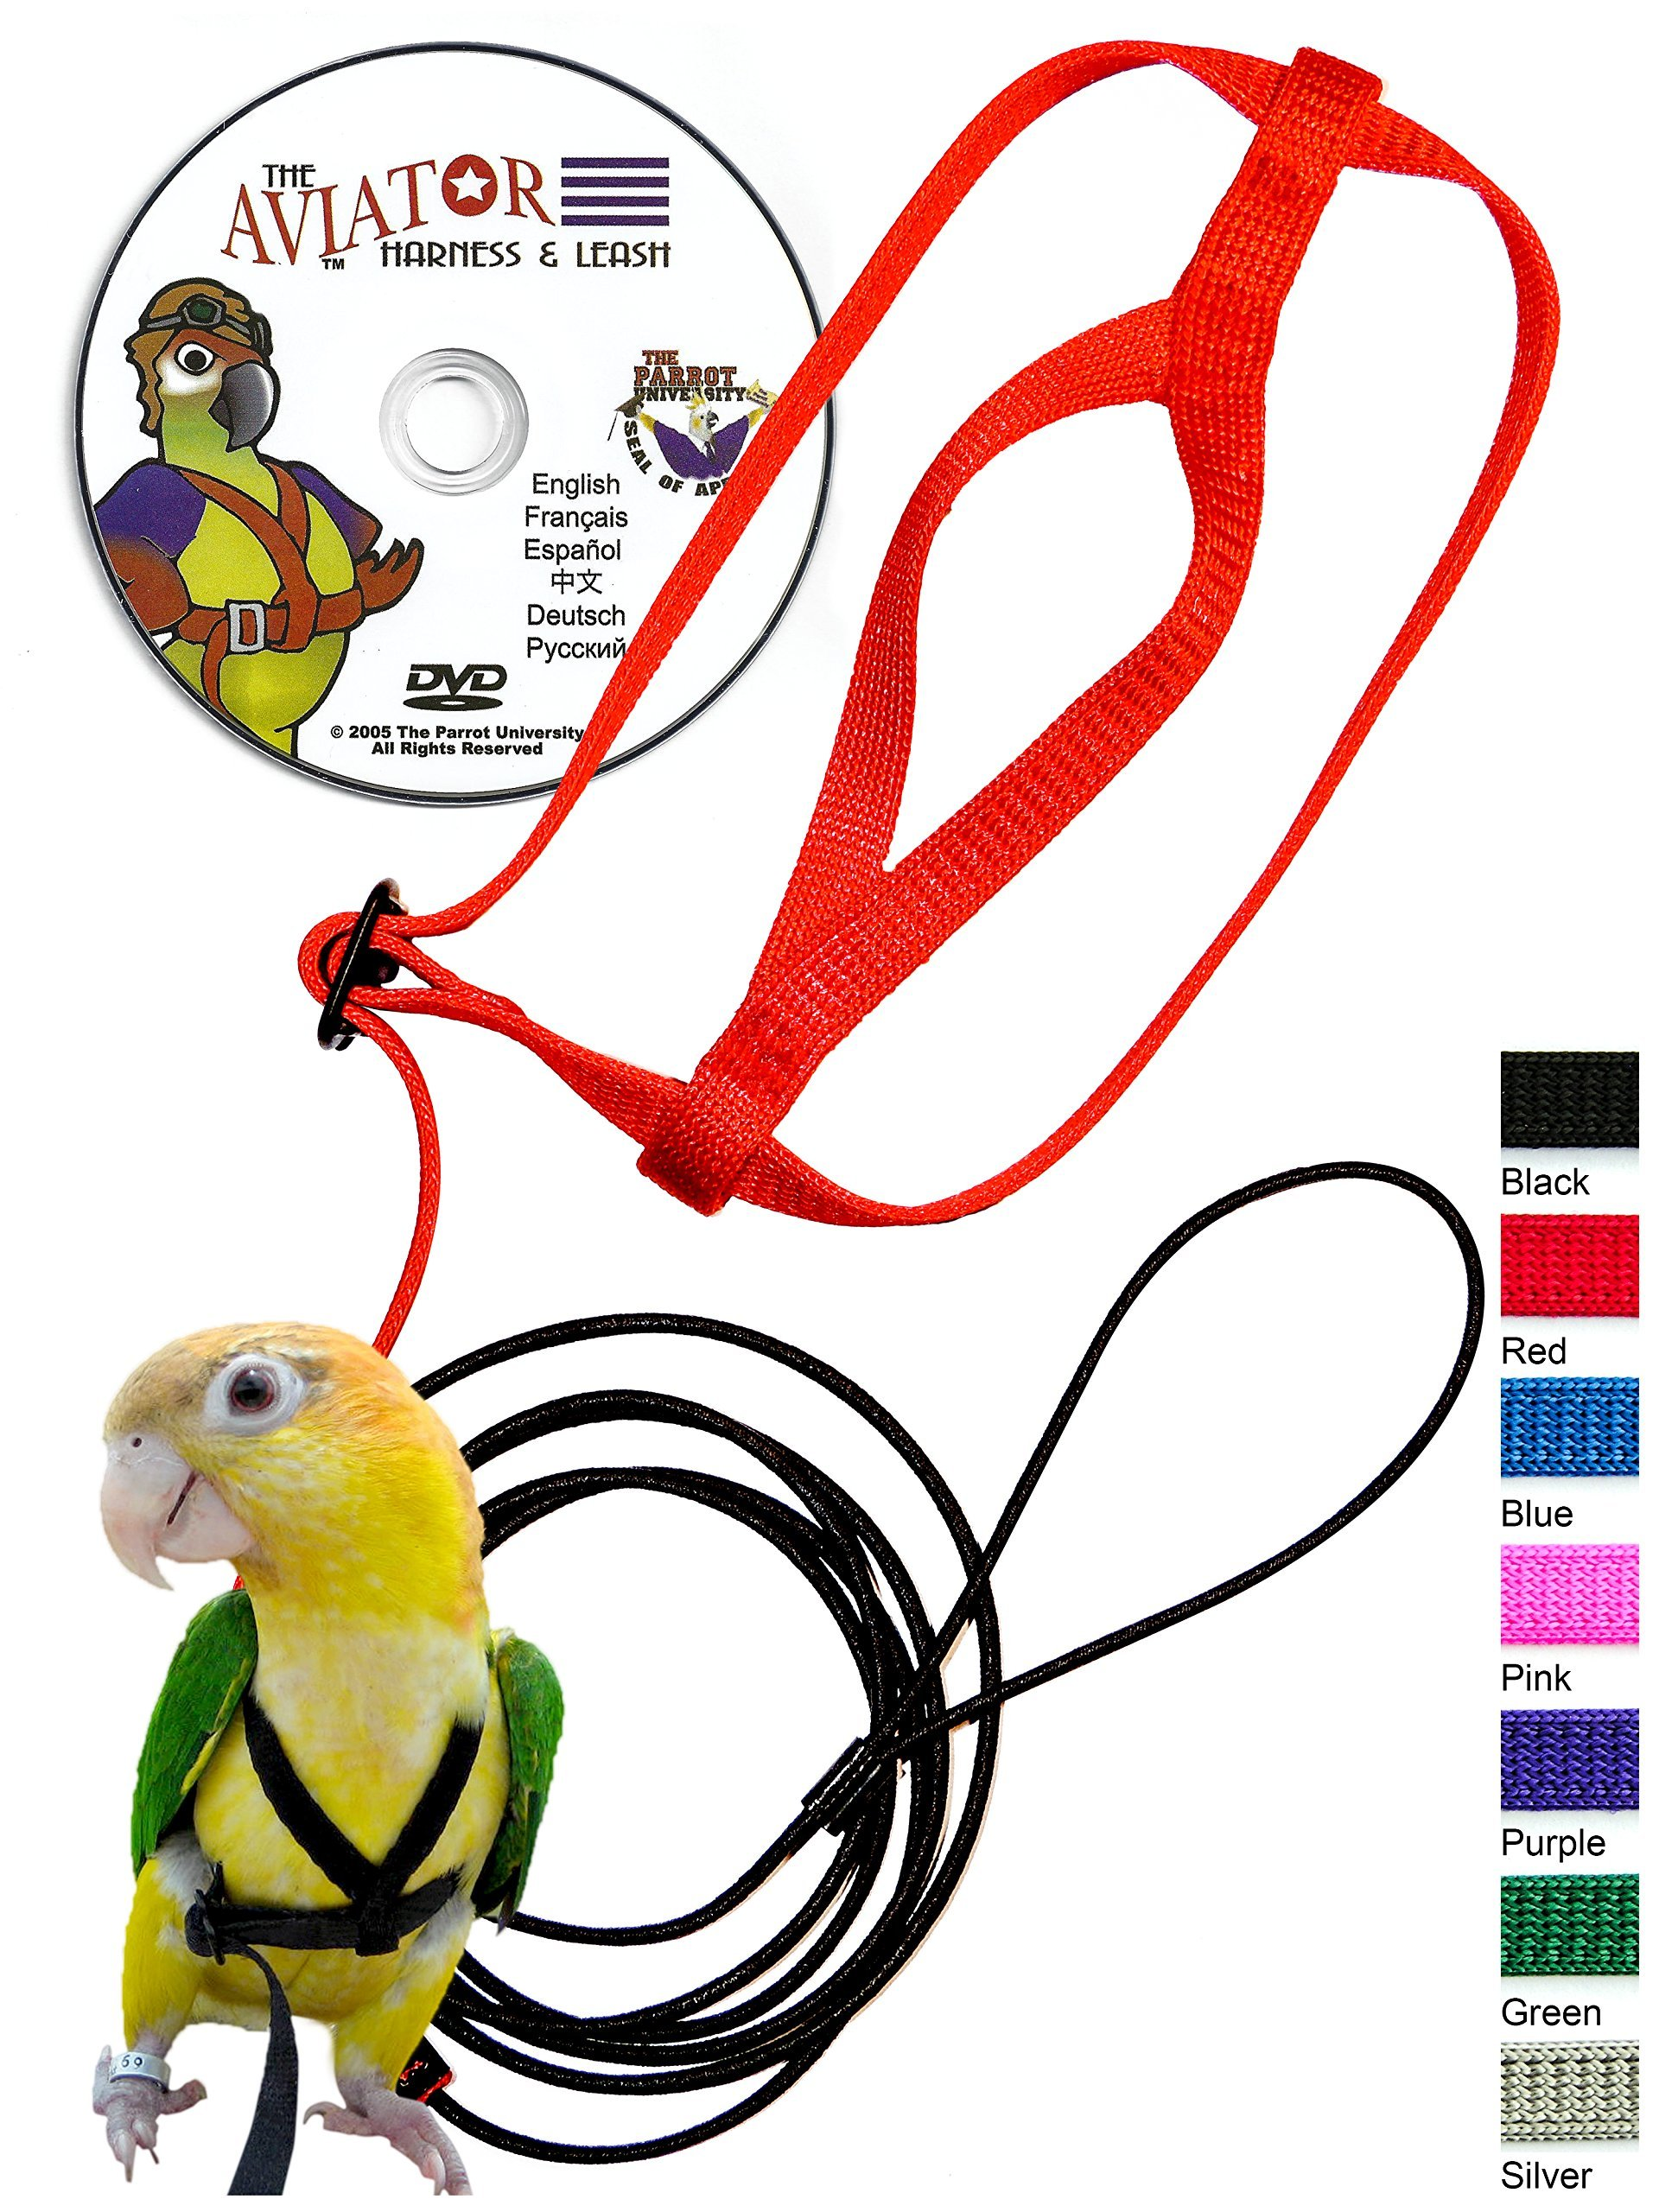 The AVIATOR Pet Bird Harness and Leash: X-Small Black by The AVIATOR